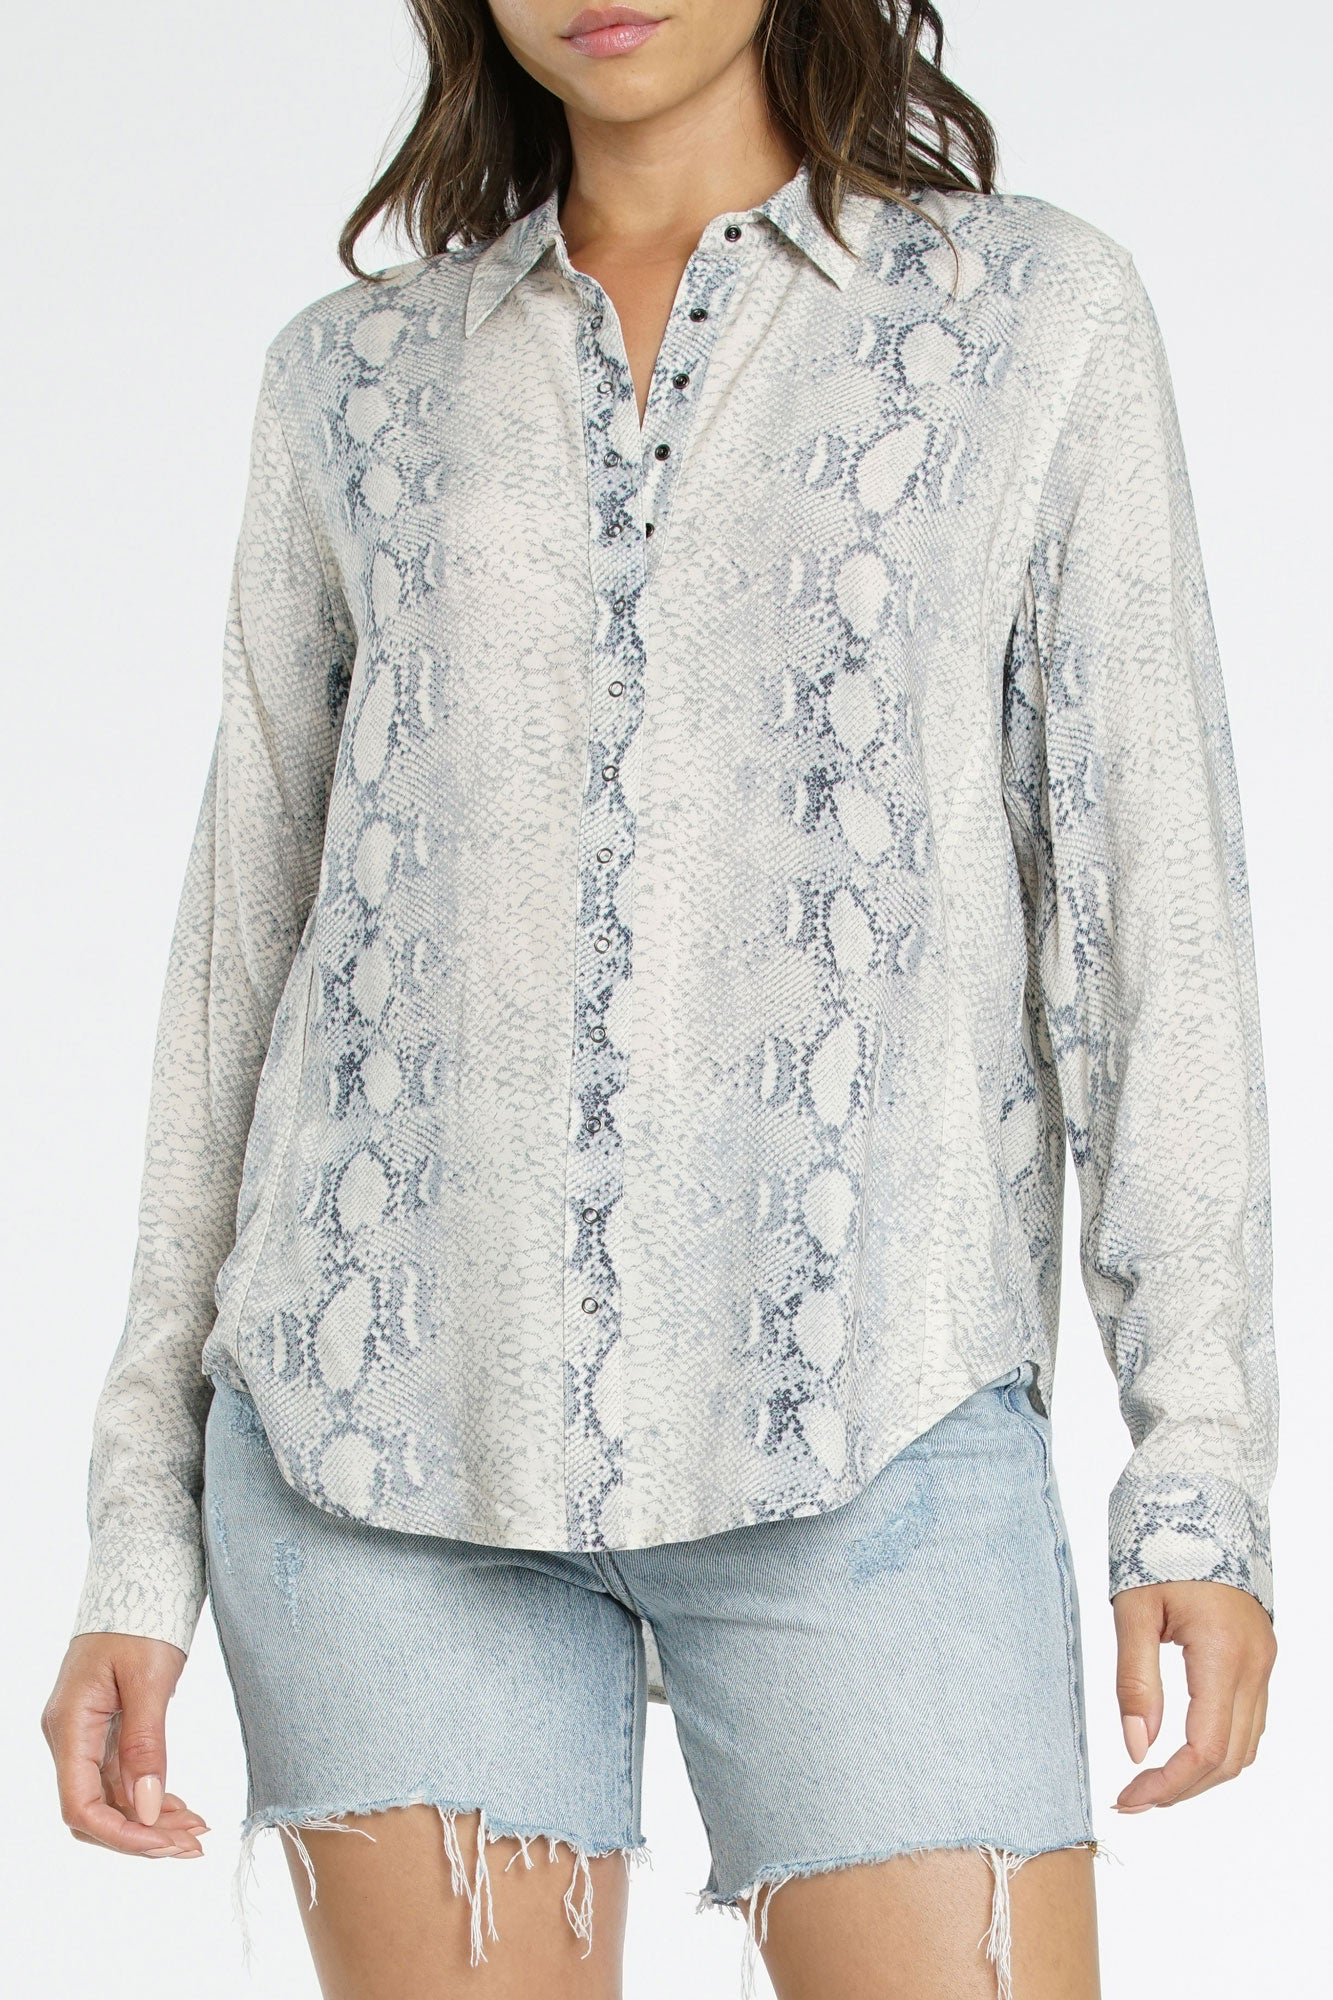 Elle Long Sleeve Front Snap Shirt - Grey Snake